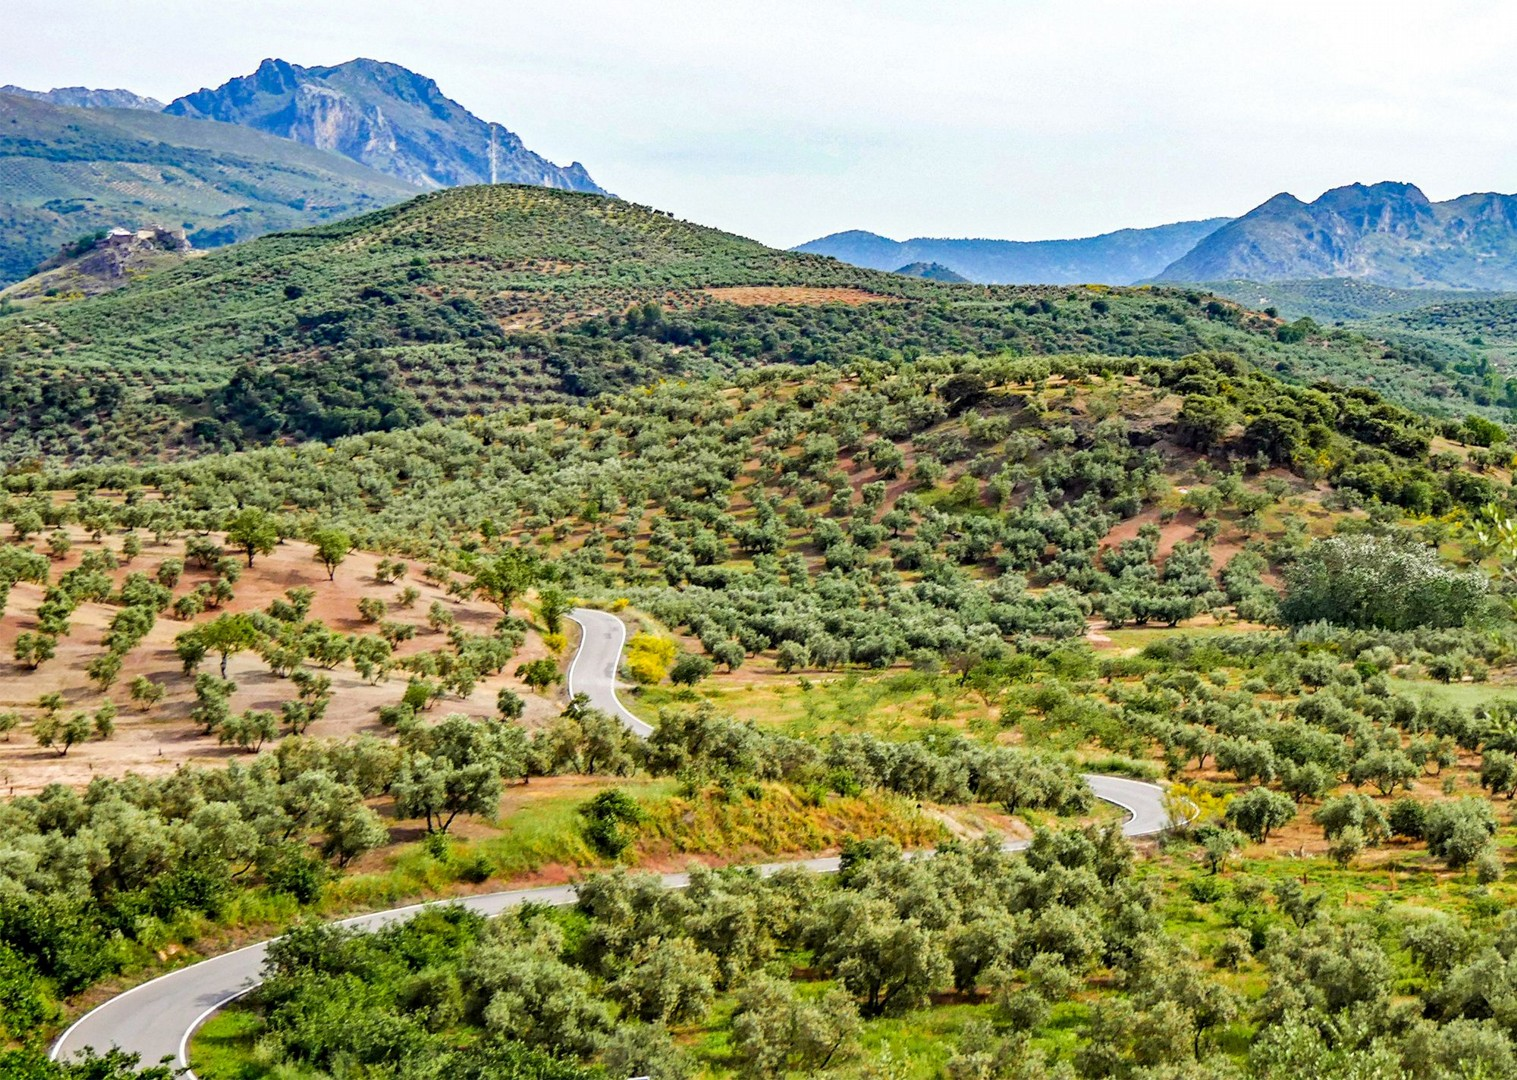 road-winding-through-the-olives-in-spain-cycling-holiday-spanish.jpg - Spain - Basque Country to Andalucia - North to South (16 Days) - Guided Road Cycling Holiday - Road Cycling